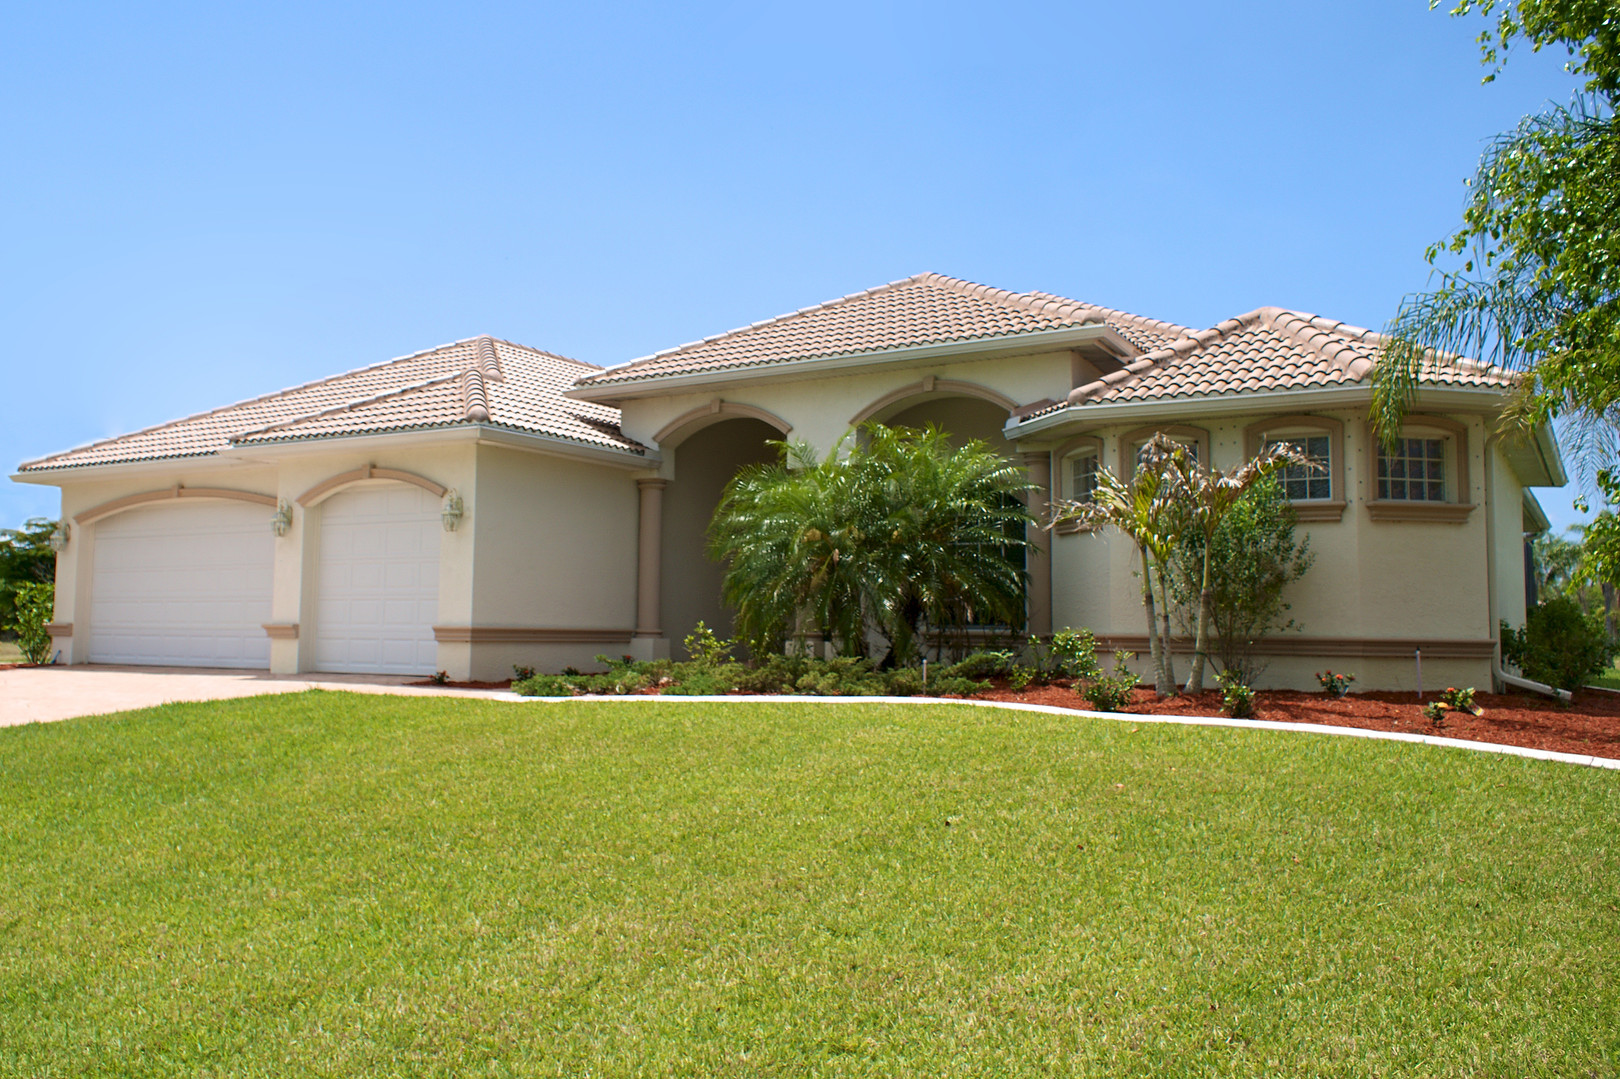 West Volusia Apartment Houses.jpeg